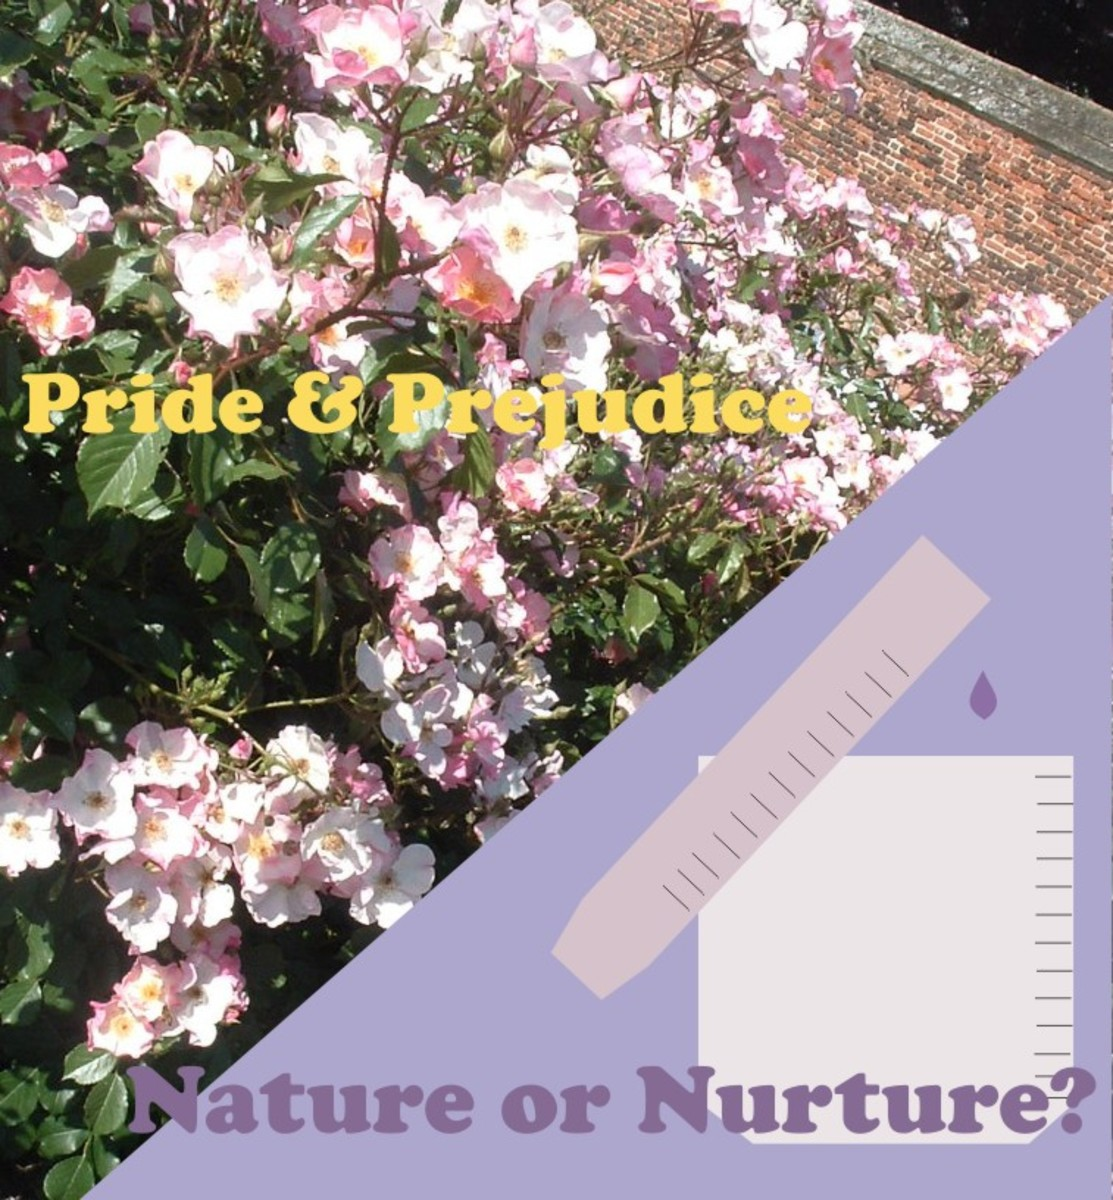 The Themes of Nature and Nurture in Pride & Prejudice